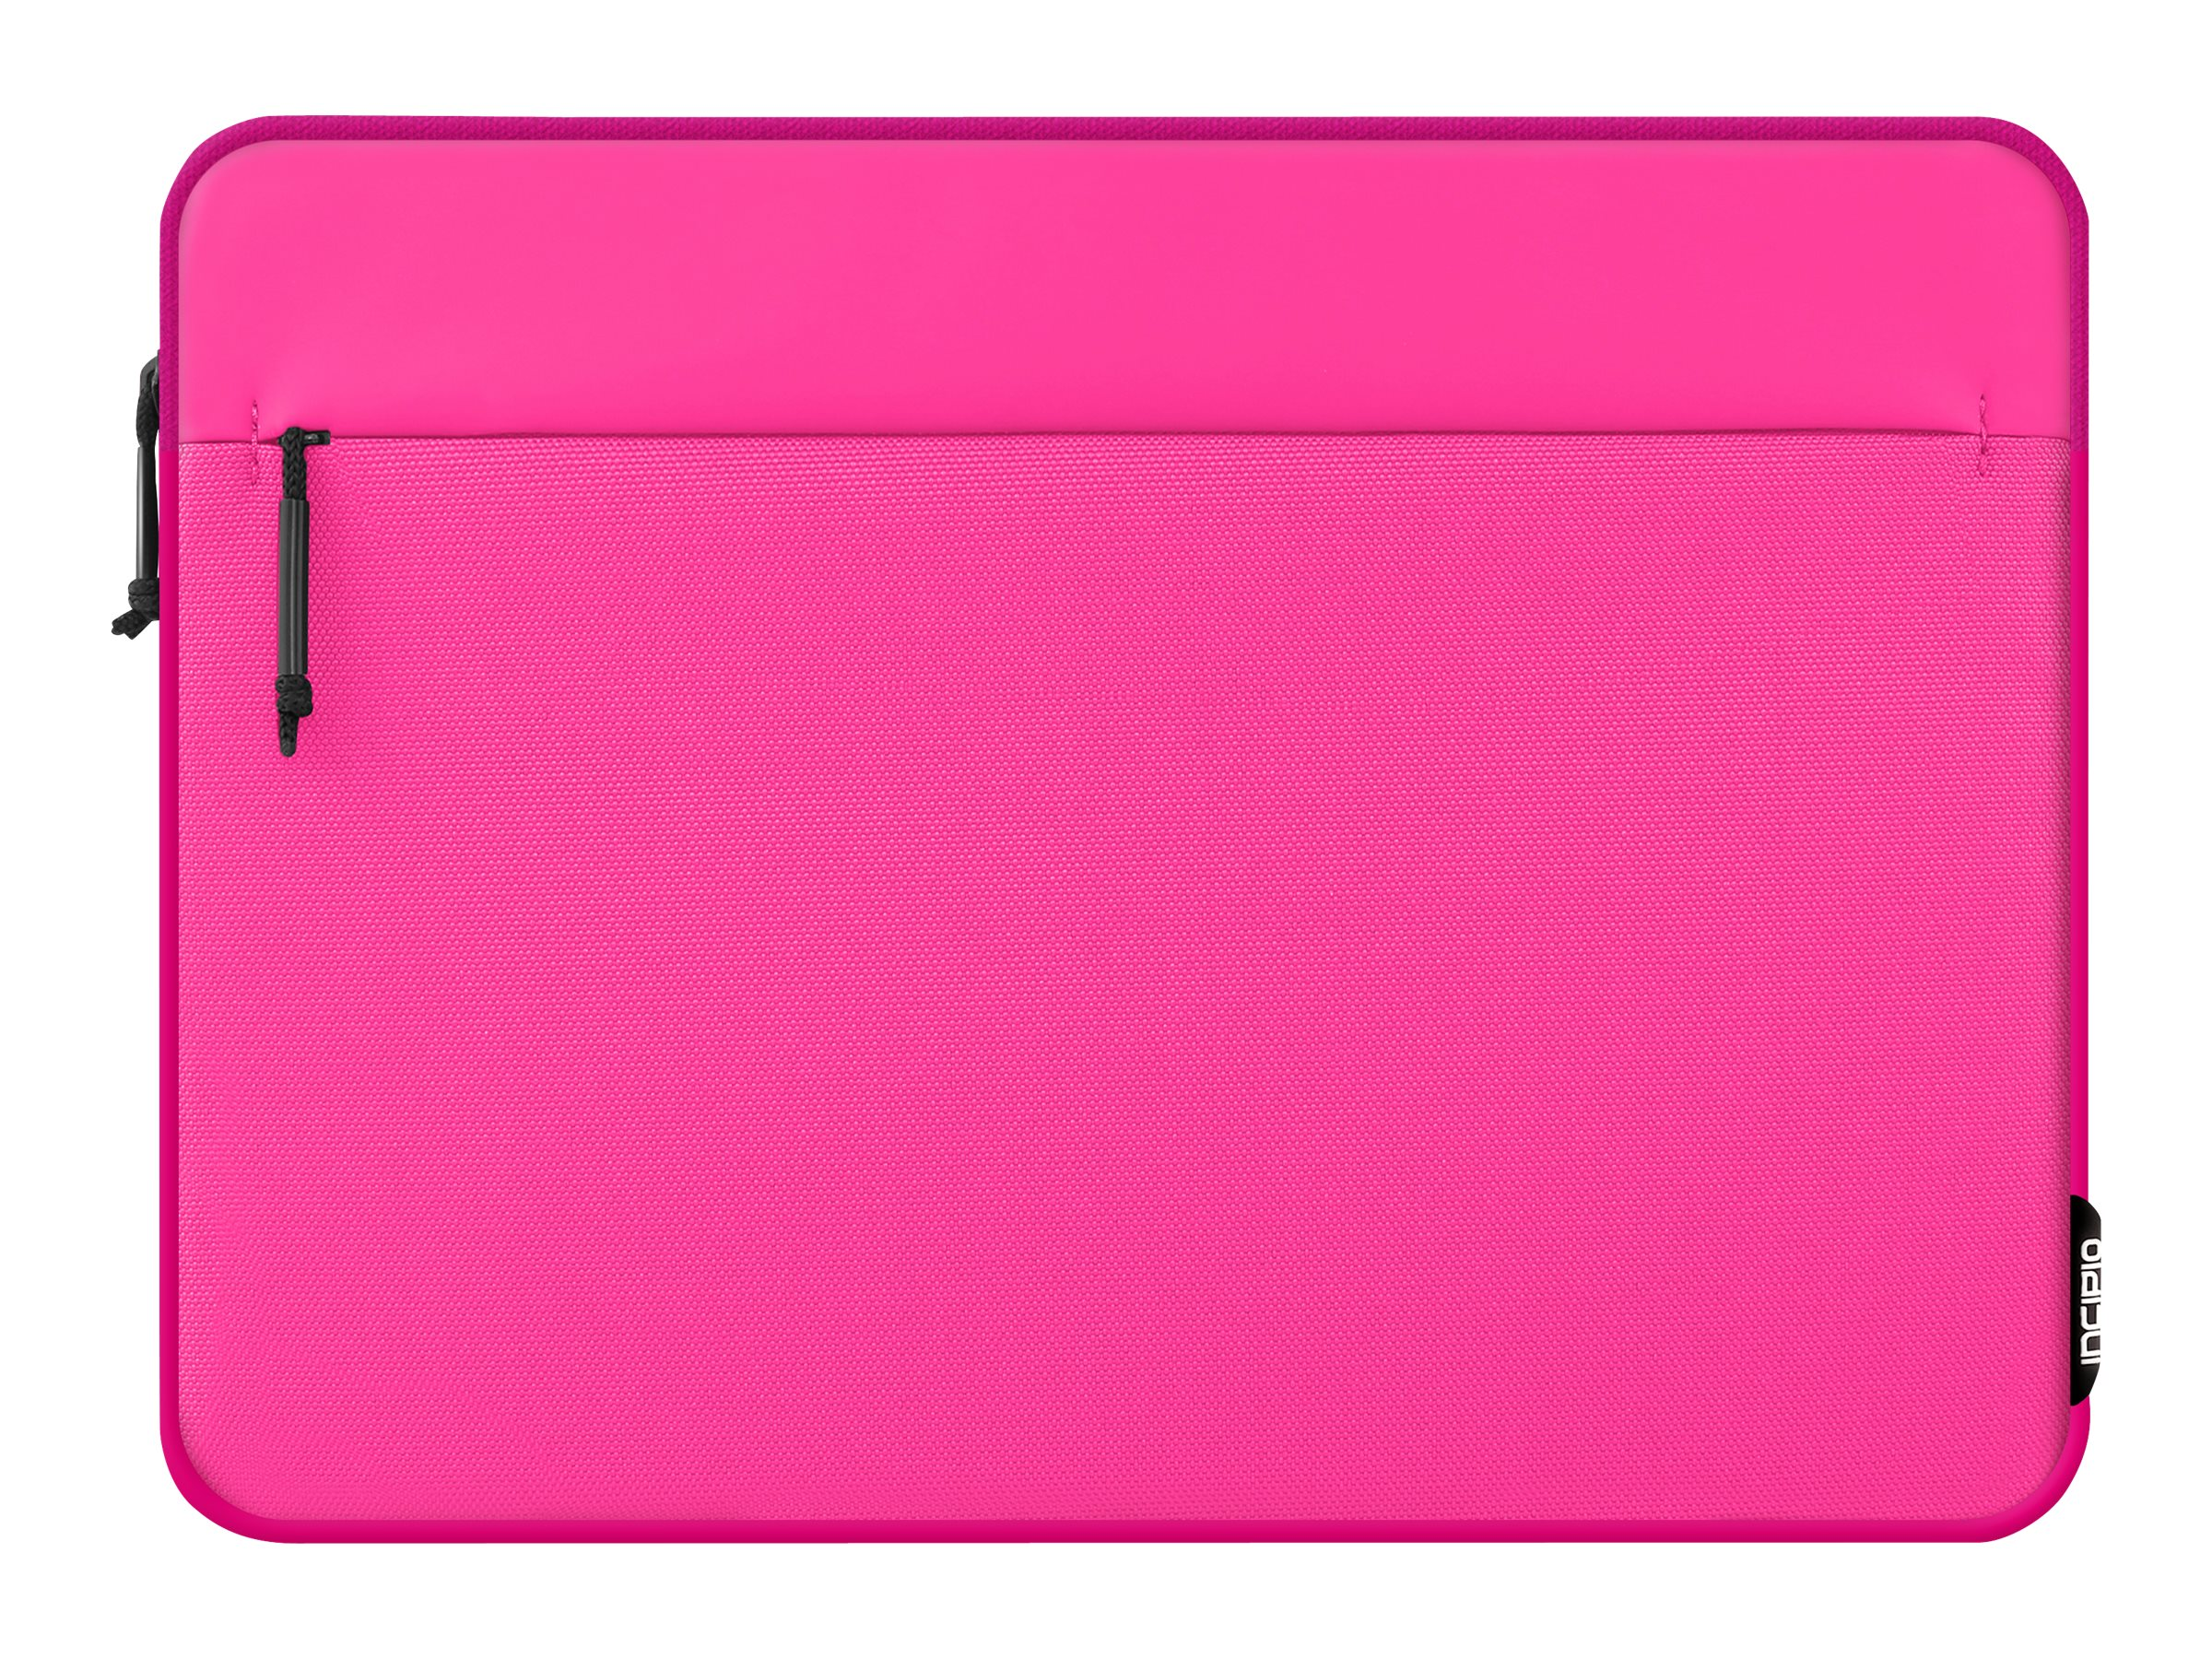 Incipio Truman Sleeve for iPad Pro 9.7, Pink, IPD-307-PNK